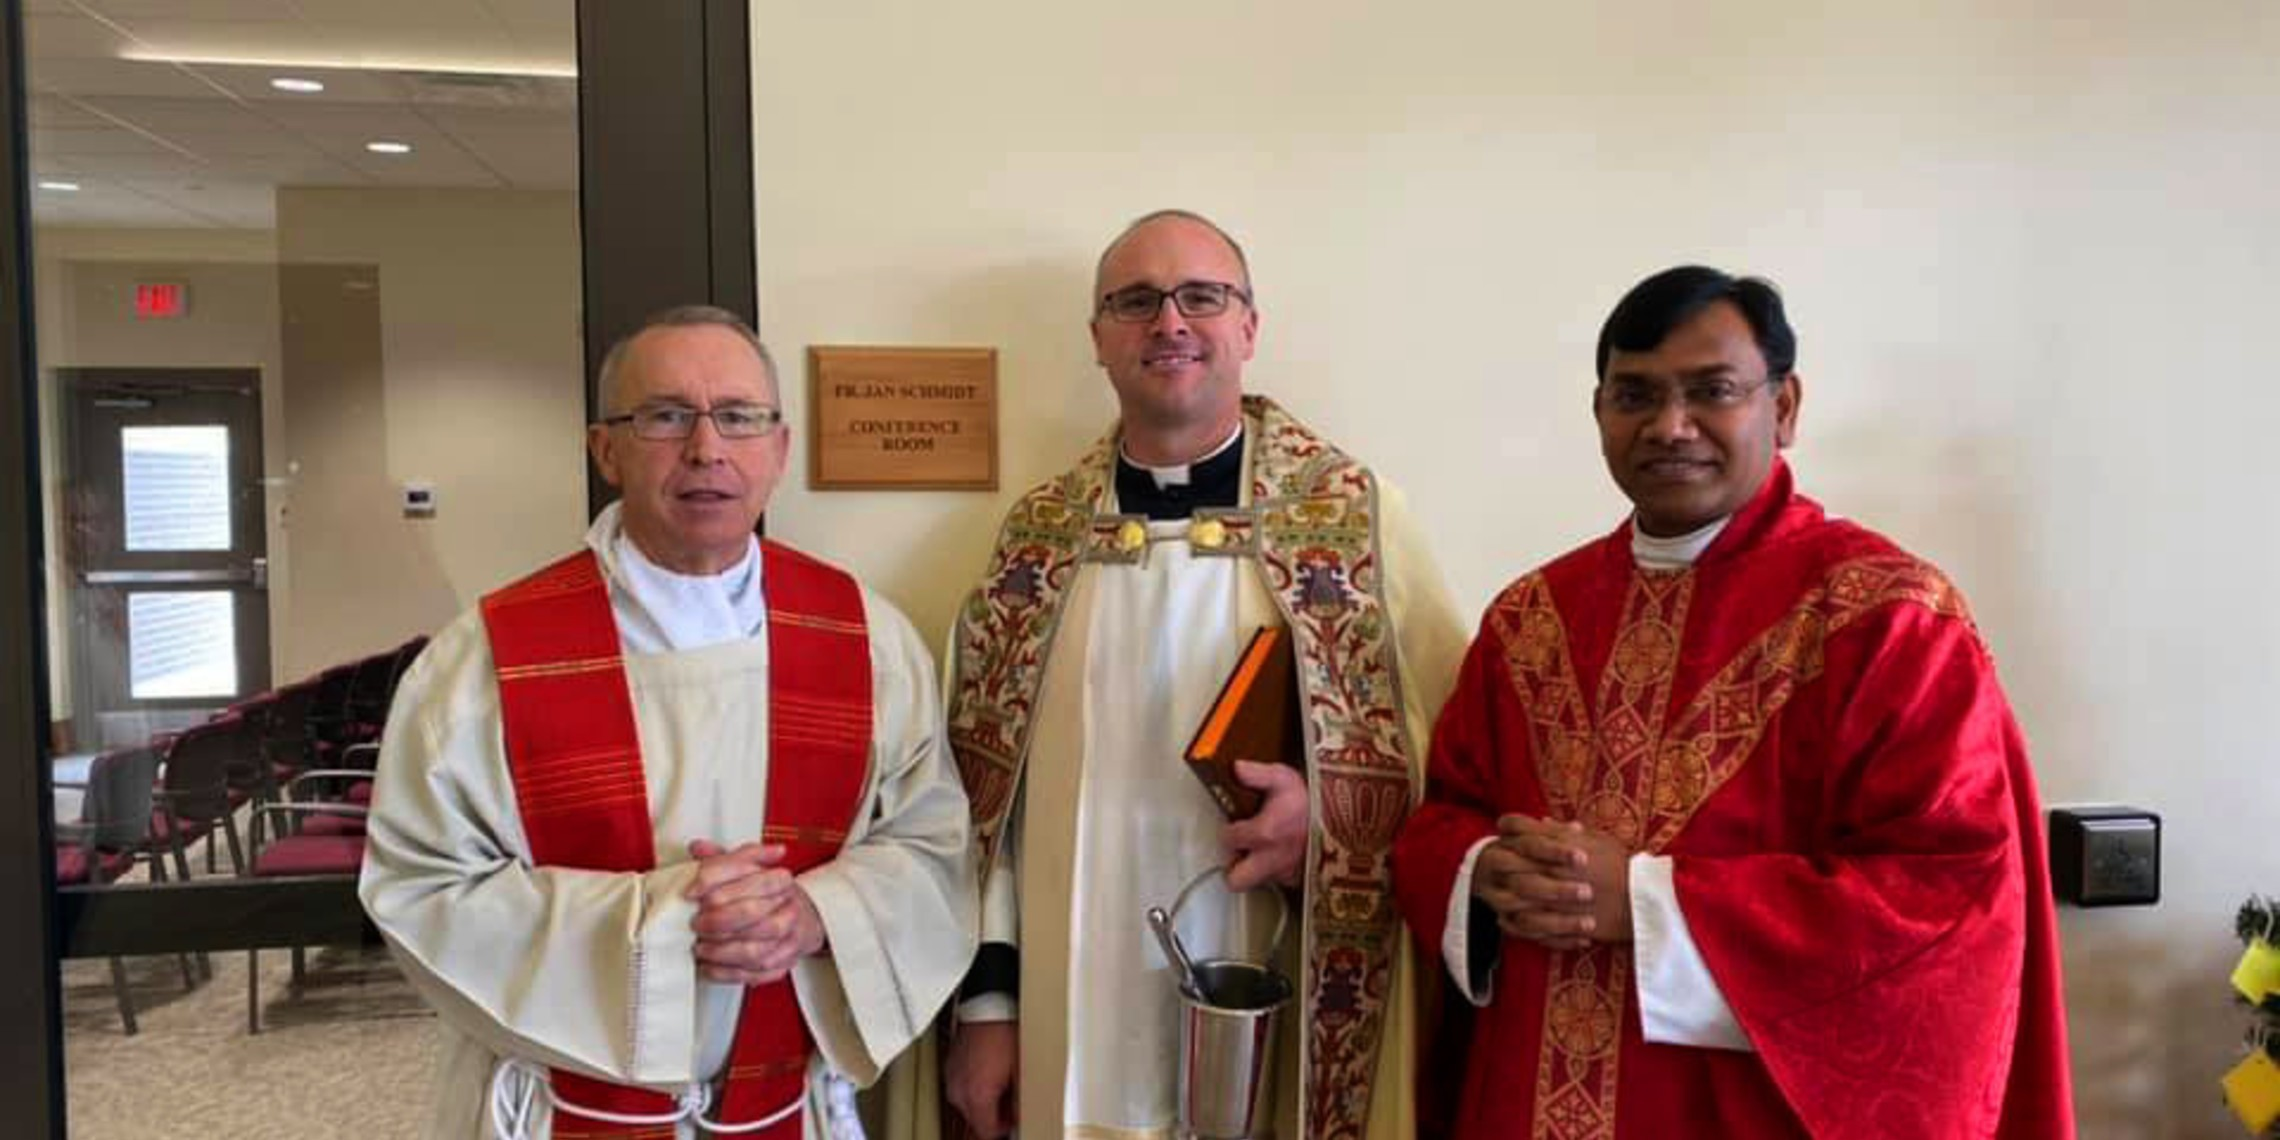 Blessing of the Father Jan Schmidt Room